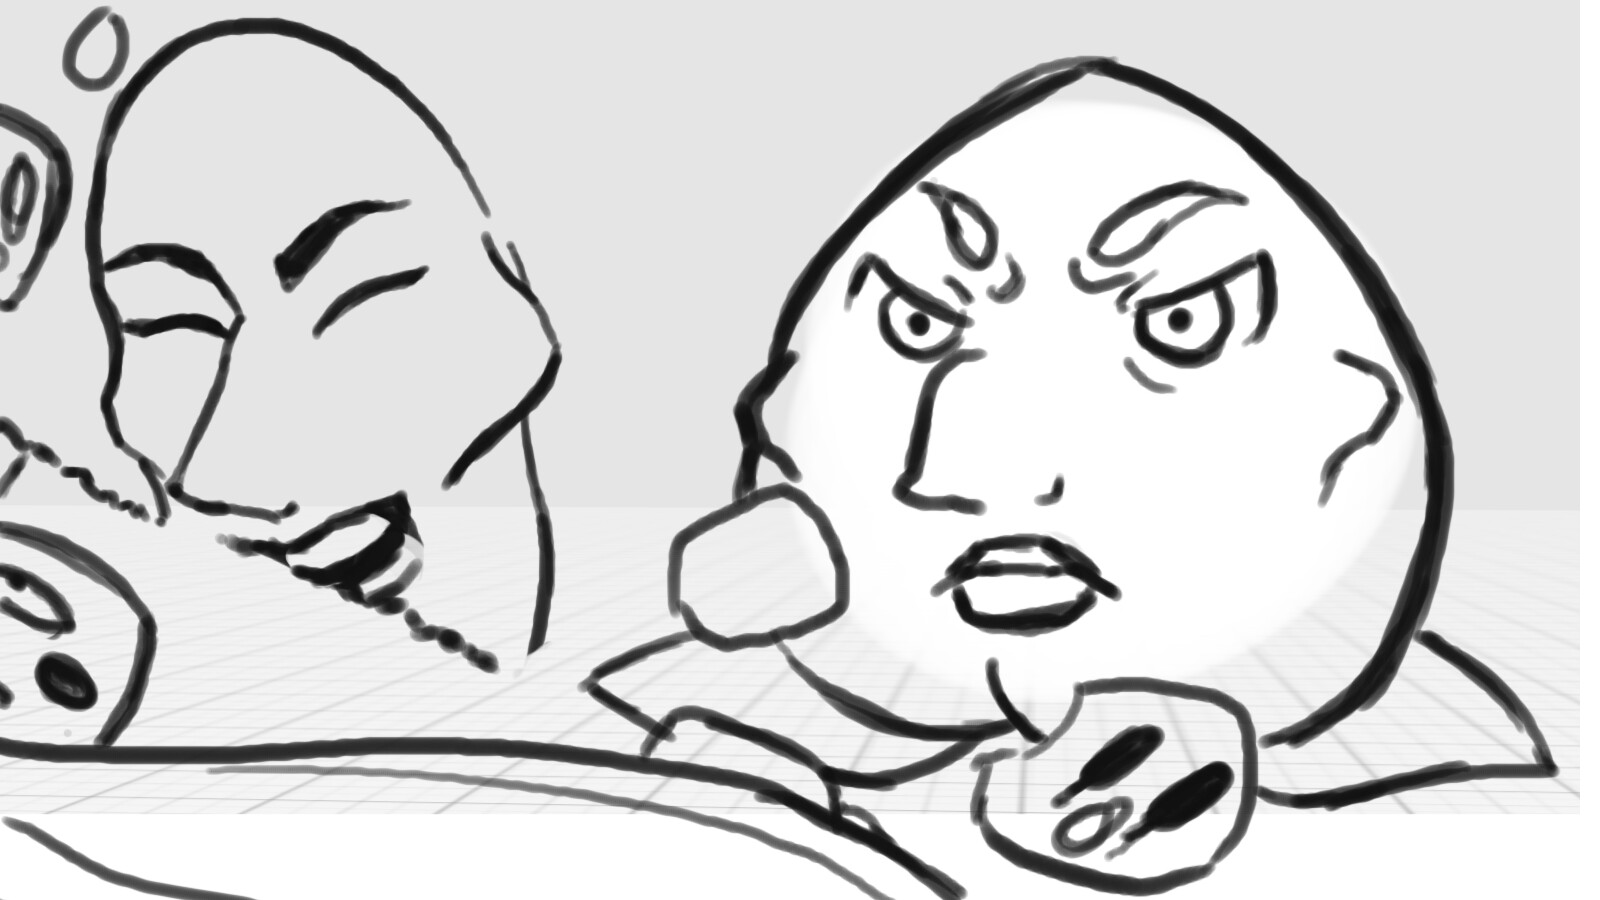 The uncoloured cutscene to the impending boss fight against Chad Pickle's ex-friend and ruler of the Supermarket Grocery Aisle-dom, Prince Peach (Any similarities to people or characters are purely coincidental... maybe)